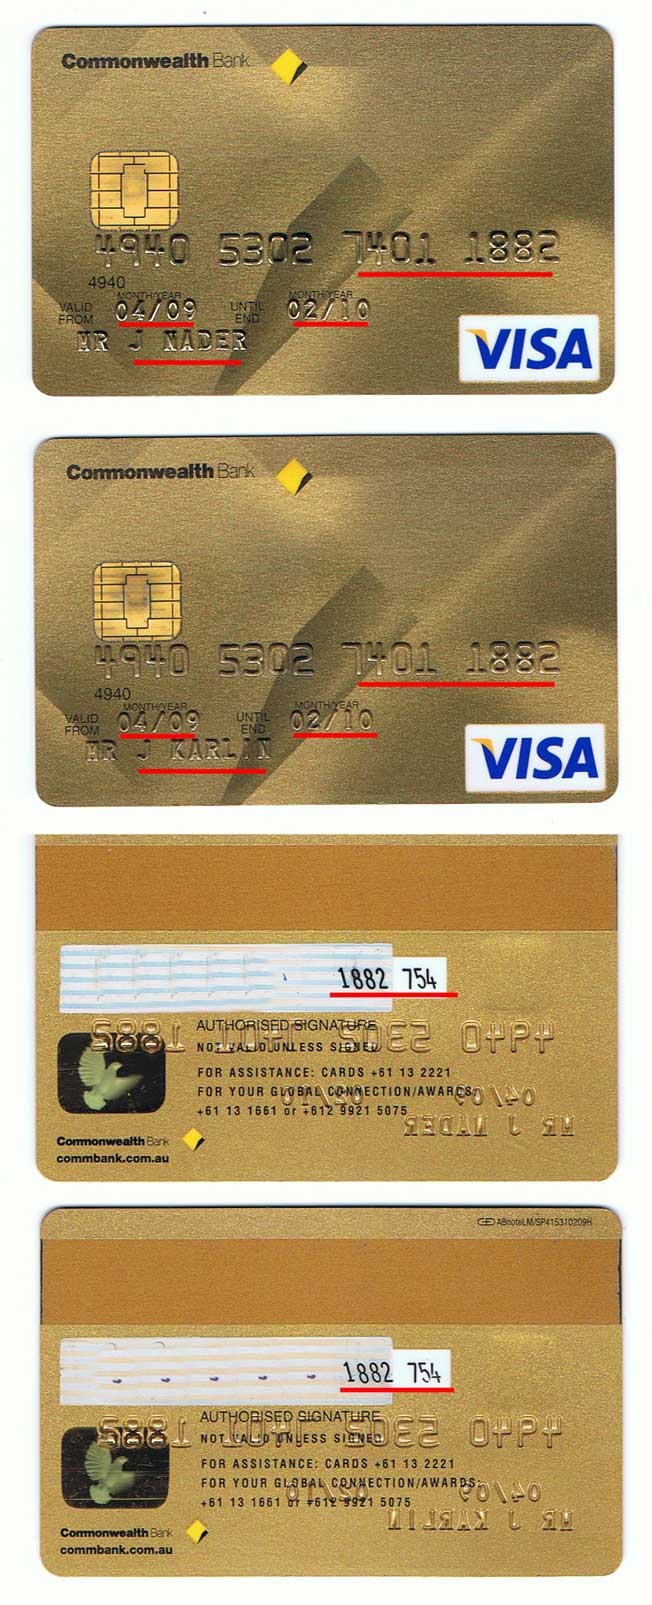 Before Mr Cohen starts to wonder if I am lying to my banks, he can check this out to see that my banks know exactly who I am, and they issue me with two cards that, apart from one being for JN and another for JK, they are 100% identical in every respect. The bank account links to the one single account using the same numbers, the same expiry dates, and even the same security number at the back.